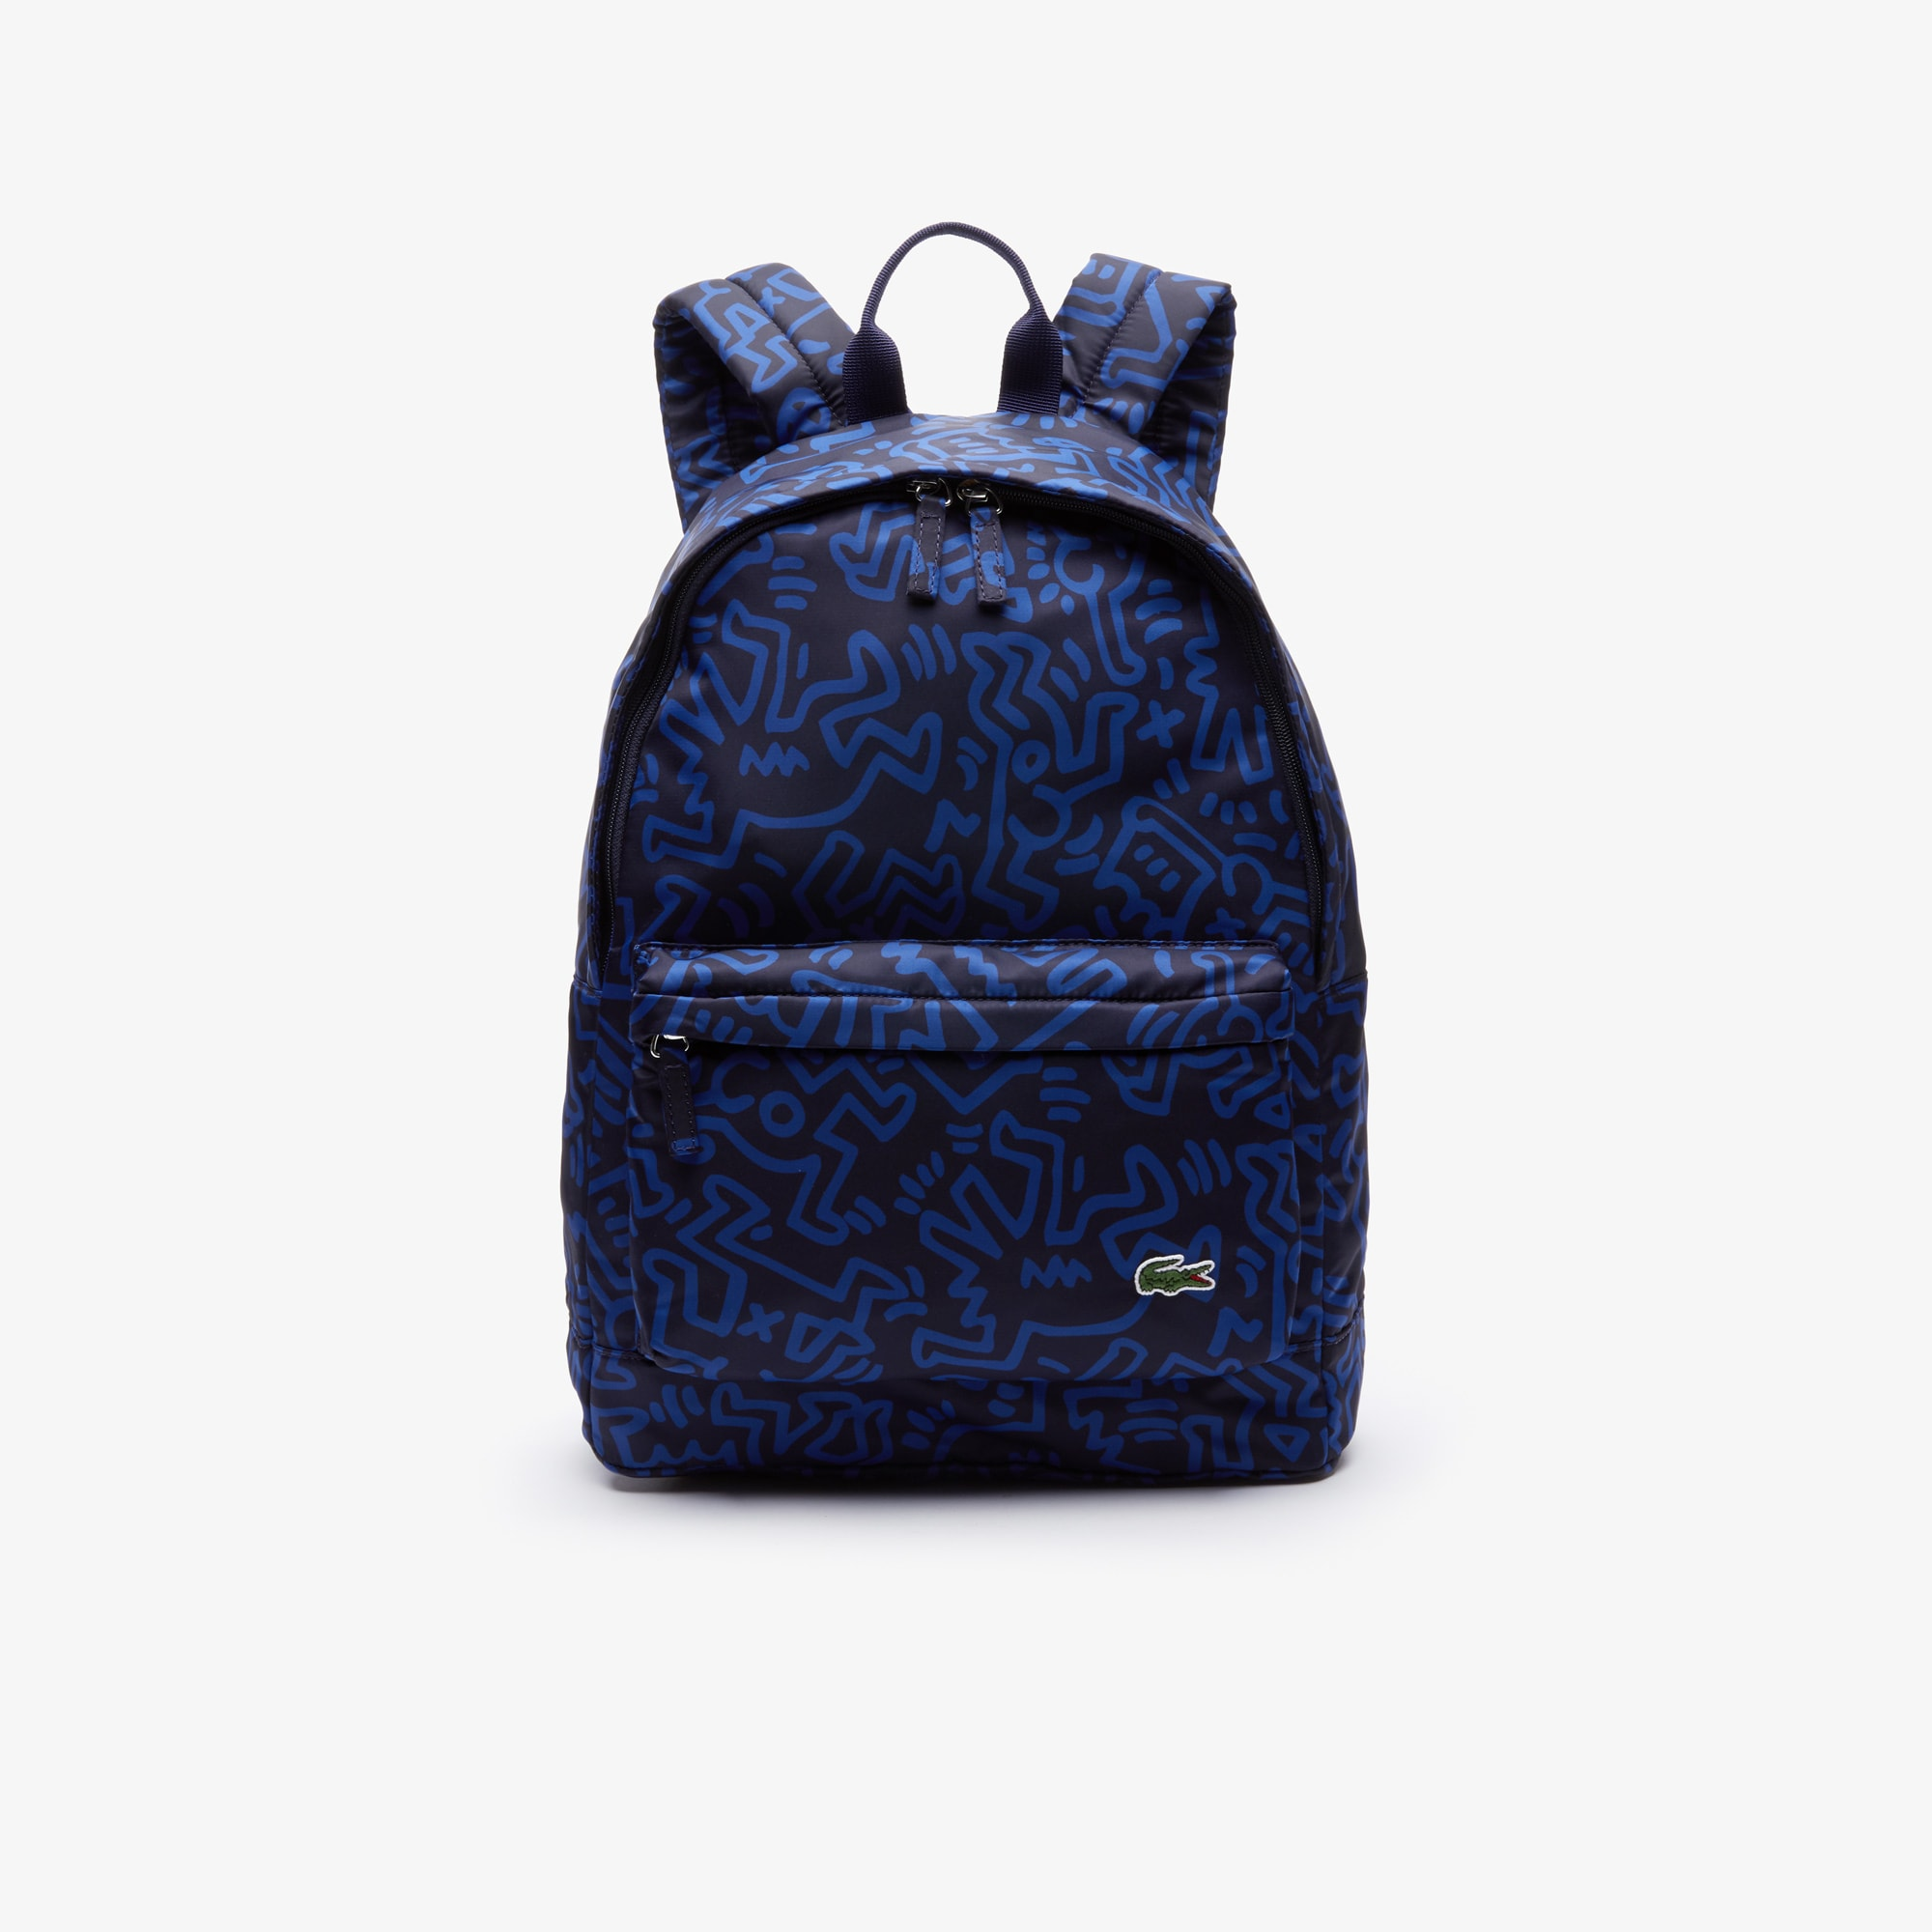 26ca8ac9c08 Keith Haring Canvas Backpack | LACOSTE